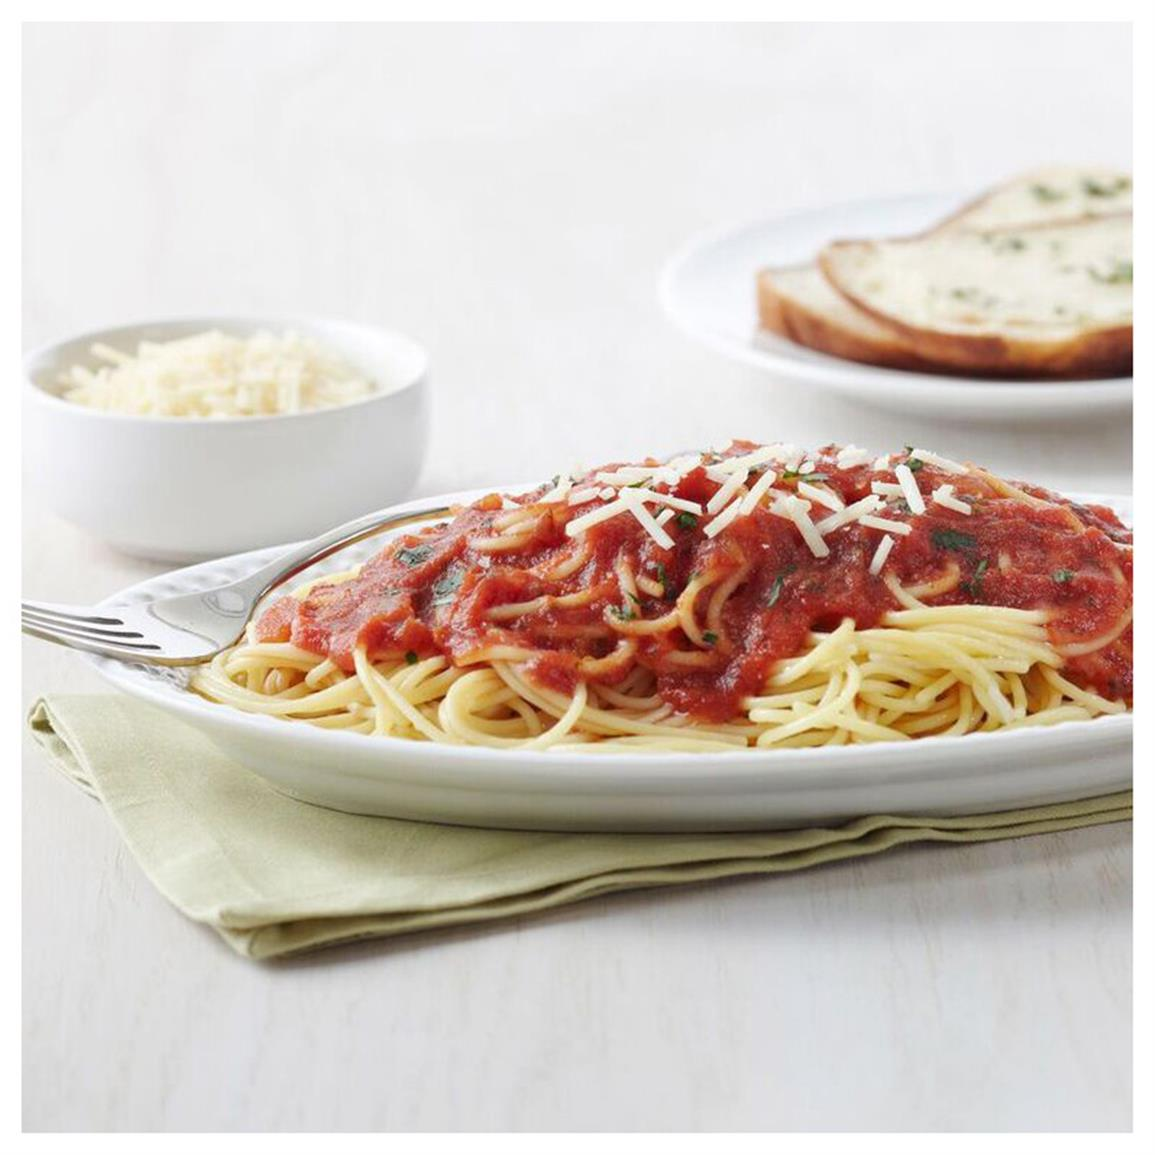 1 can Ready Cuisine Spaghetti Marinara with Freeze Dried Beef (20 servings per can)